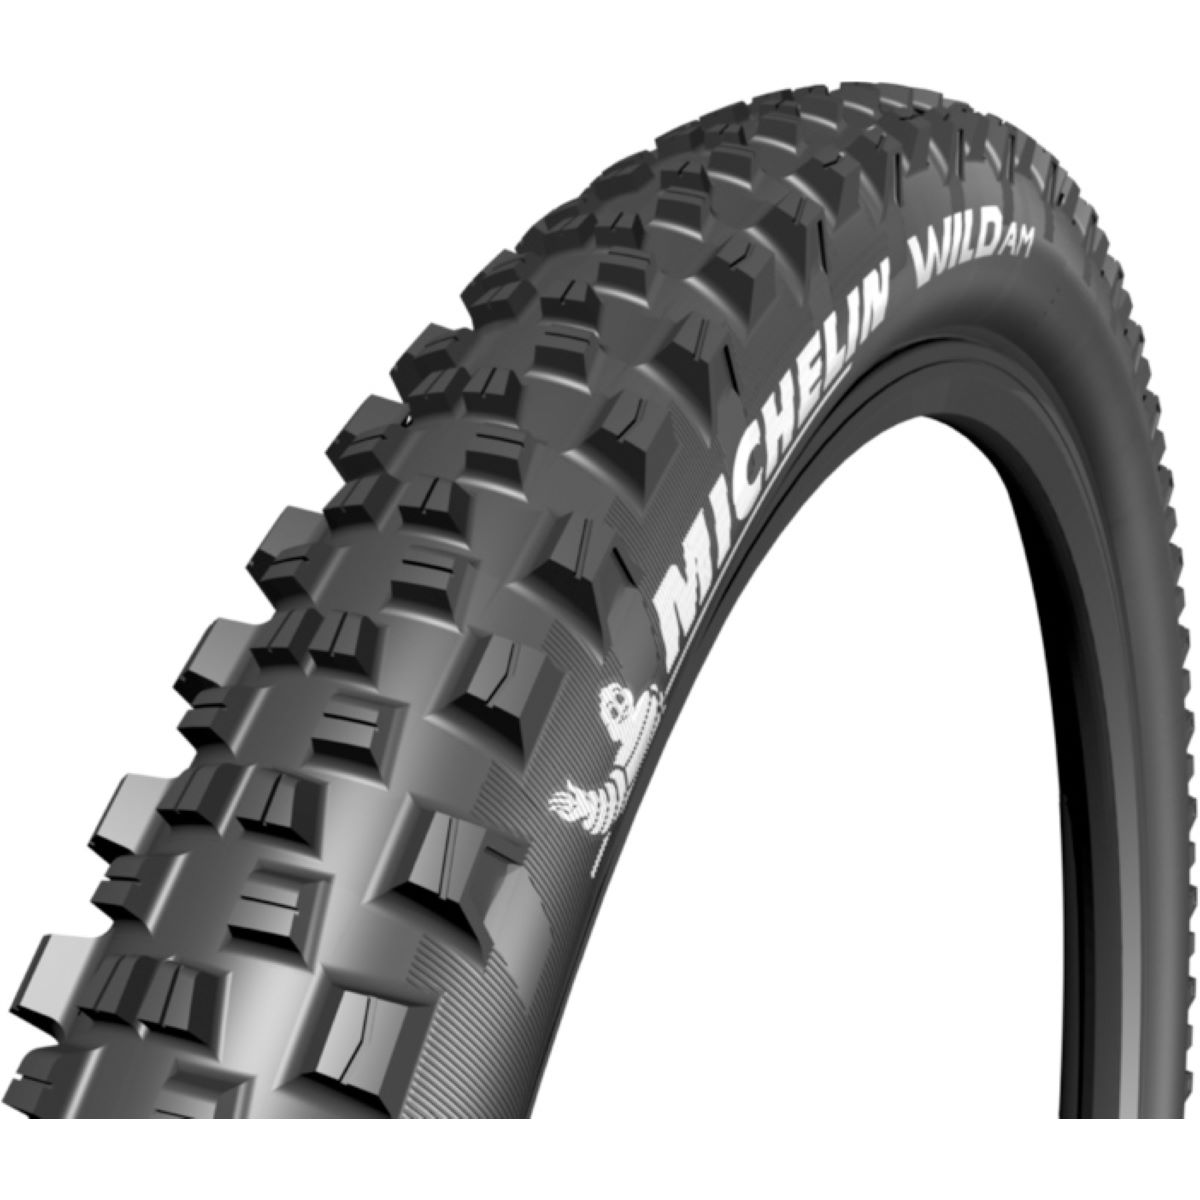 Pneu VTT Michelin Wild AM - 27.5' (650b) 2.35' F Noir